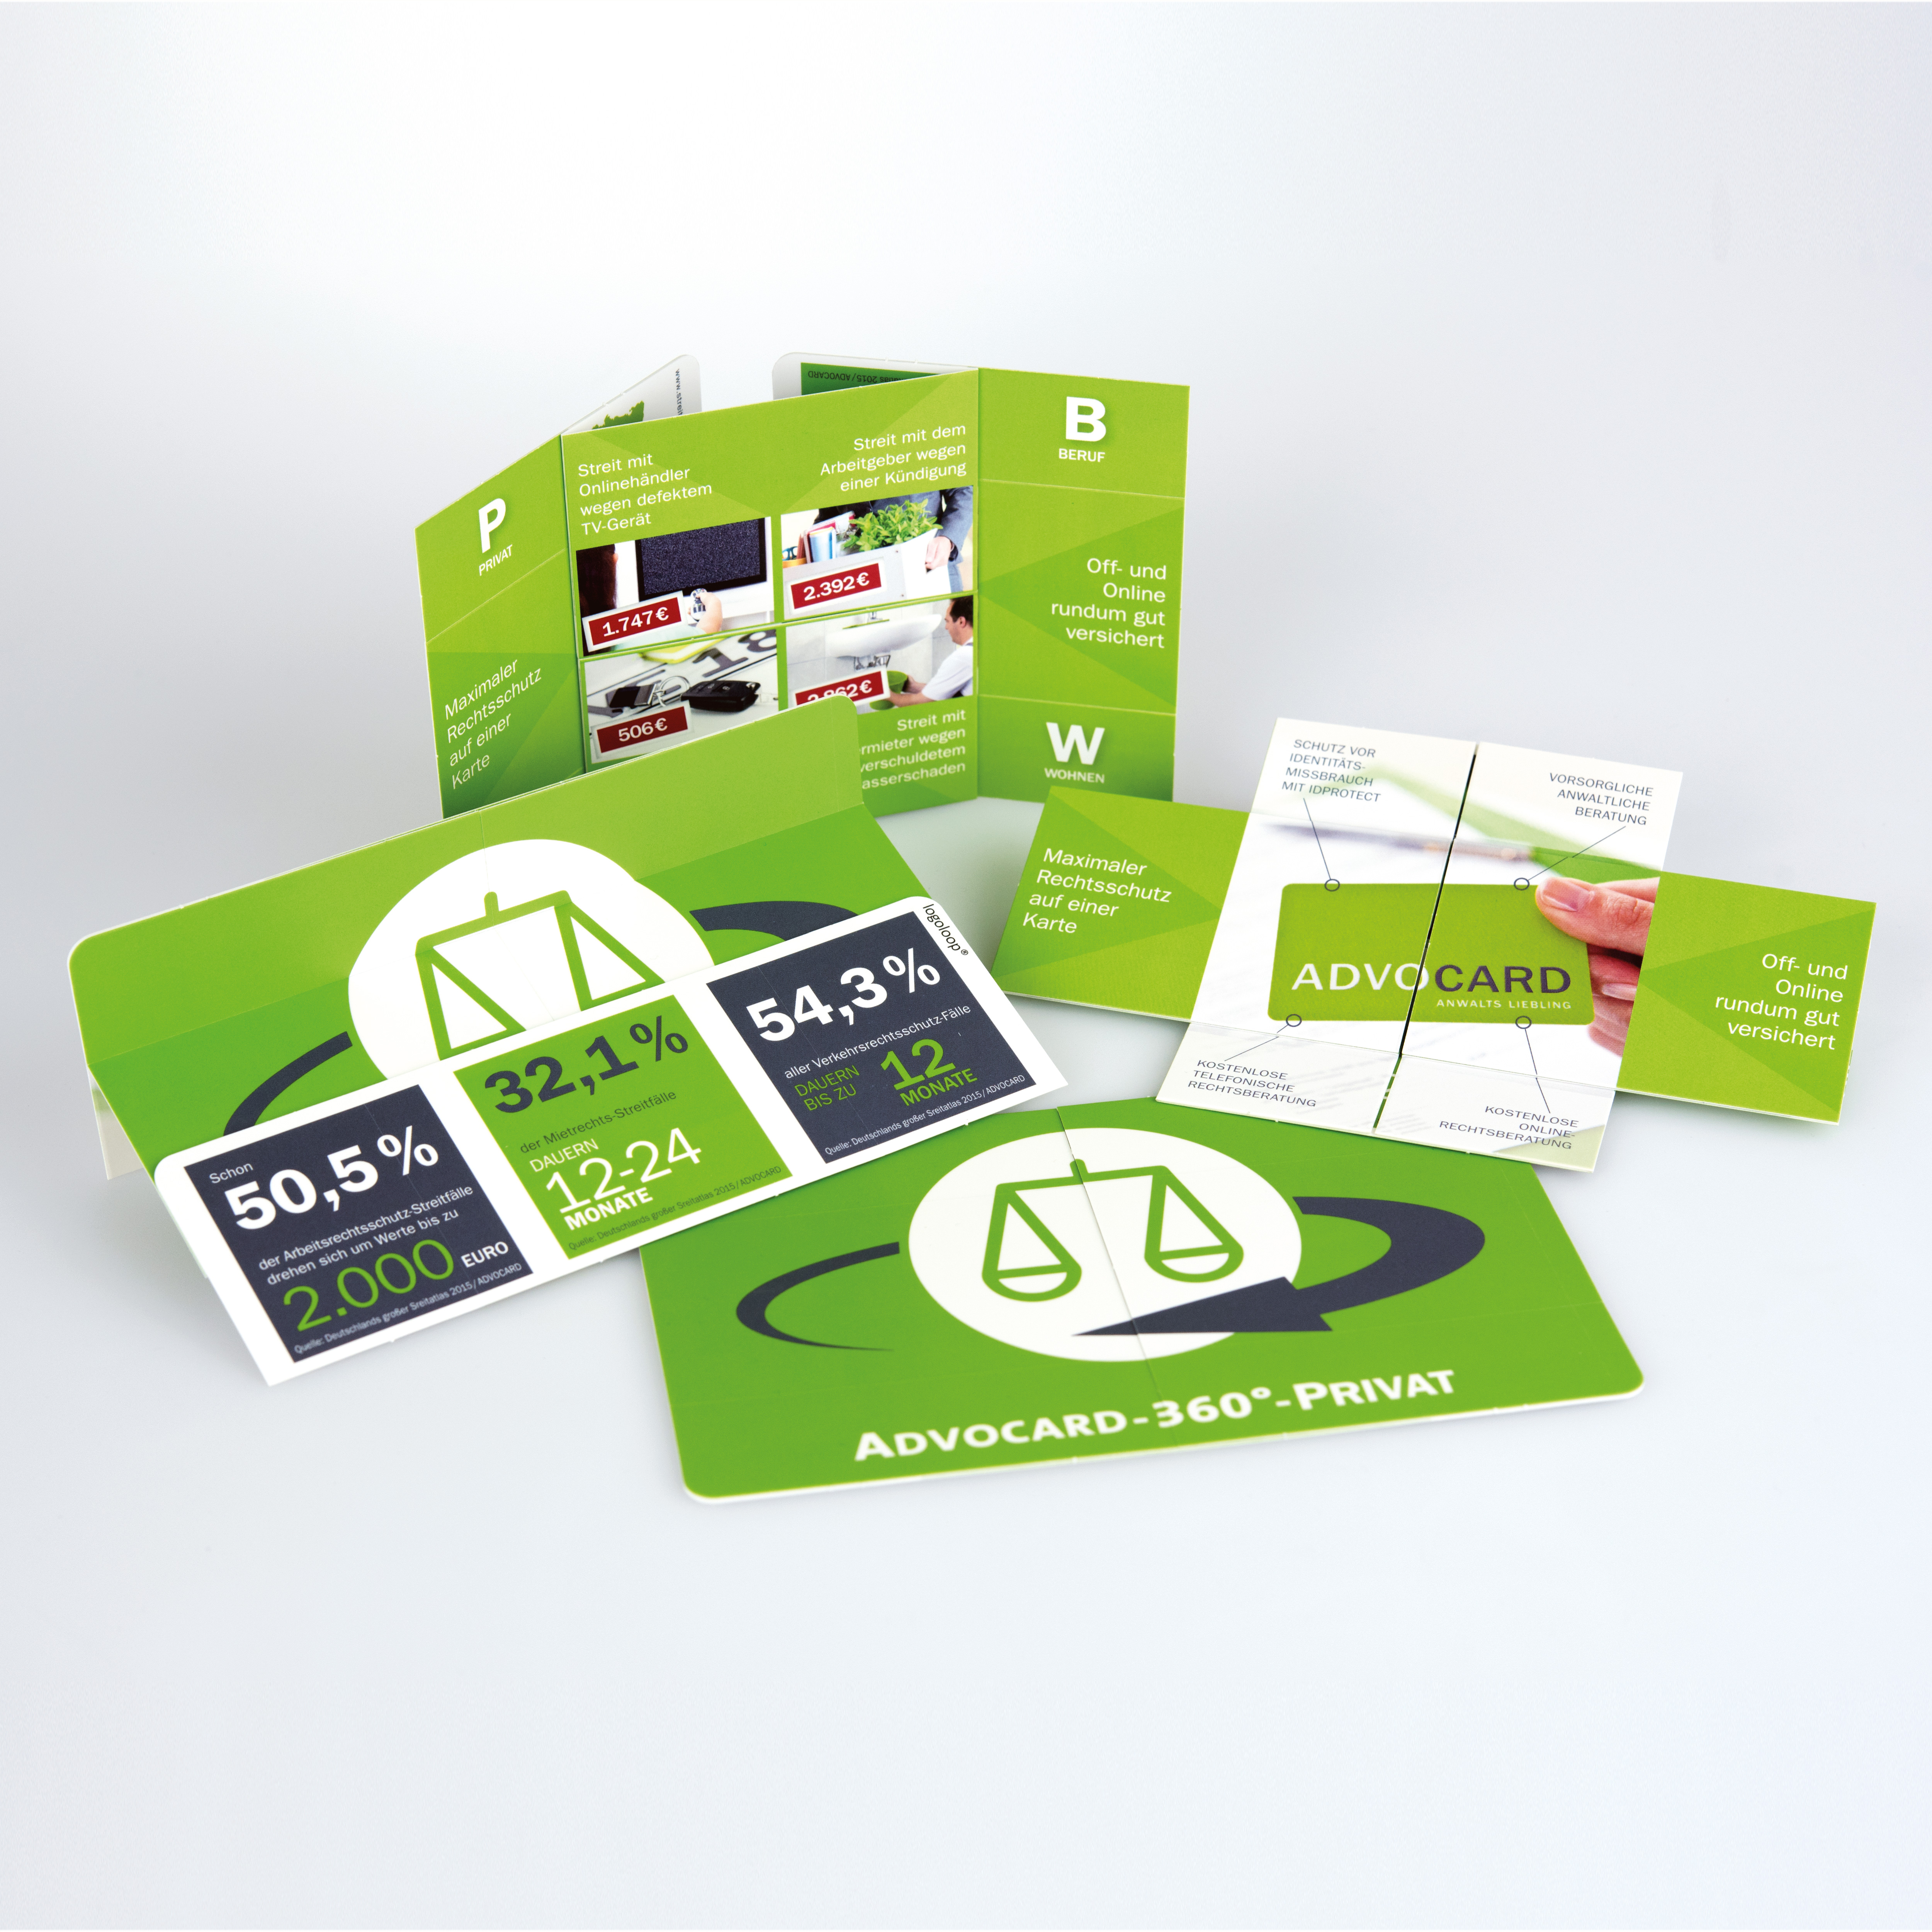 ADVOCARD-360°-Privat Logloop©